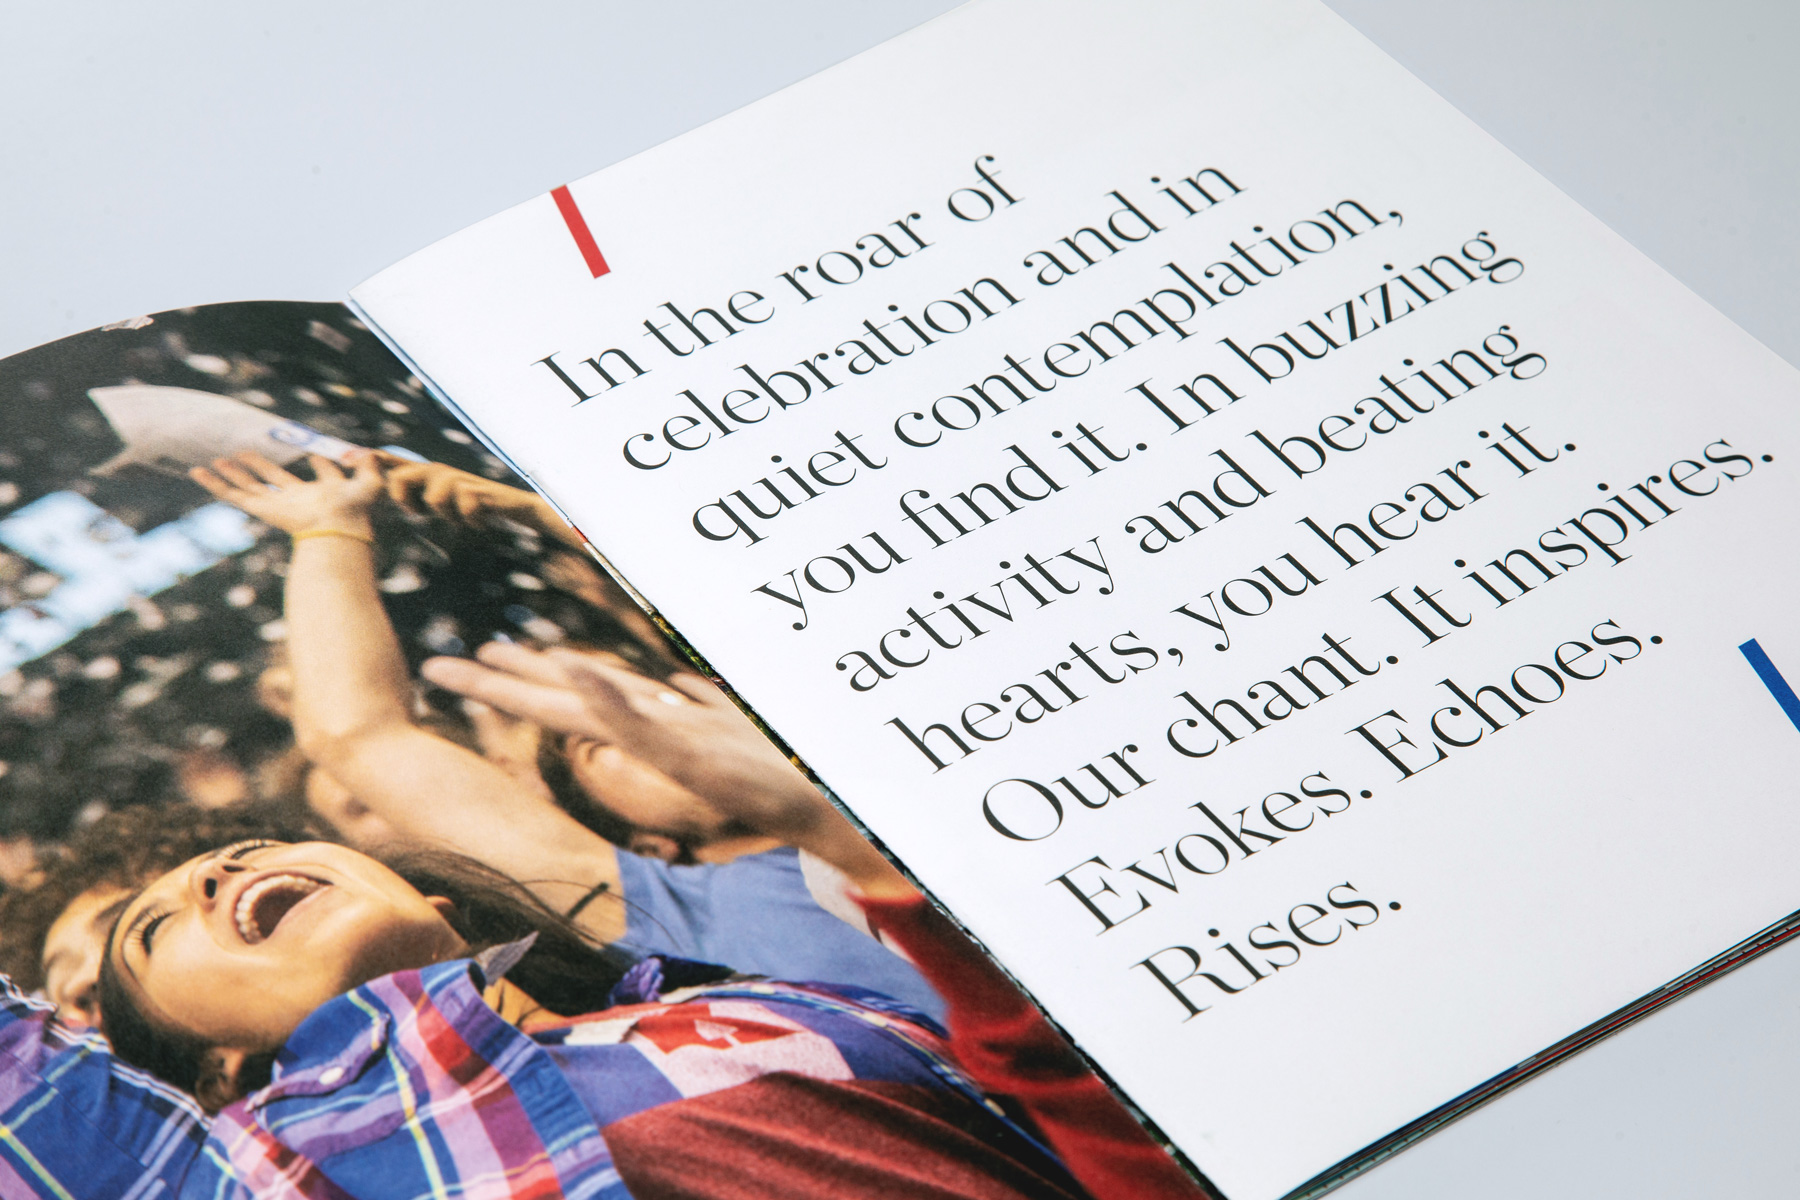 KU Viewbook opening spread highlighting type layout